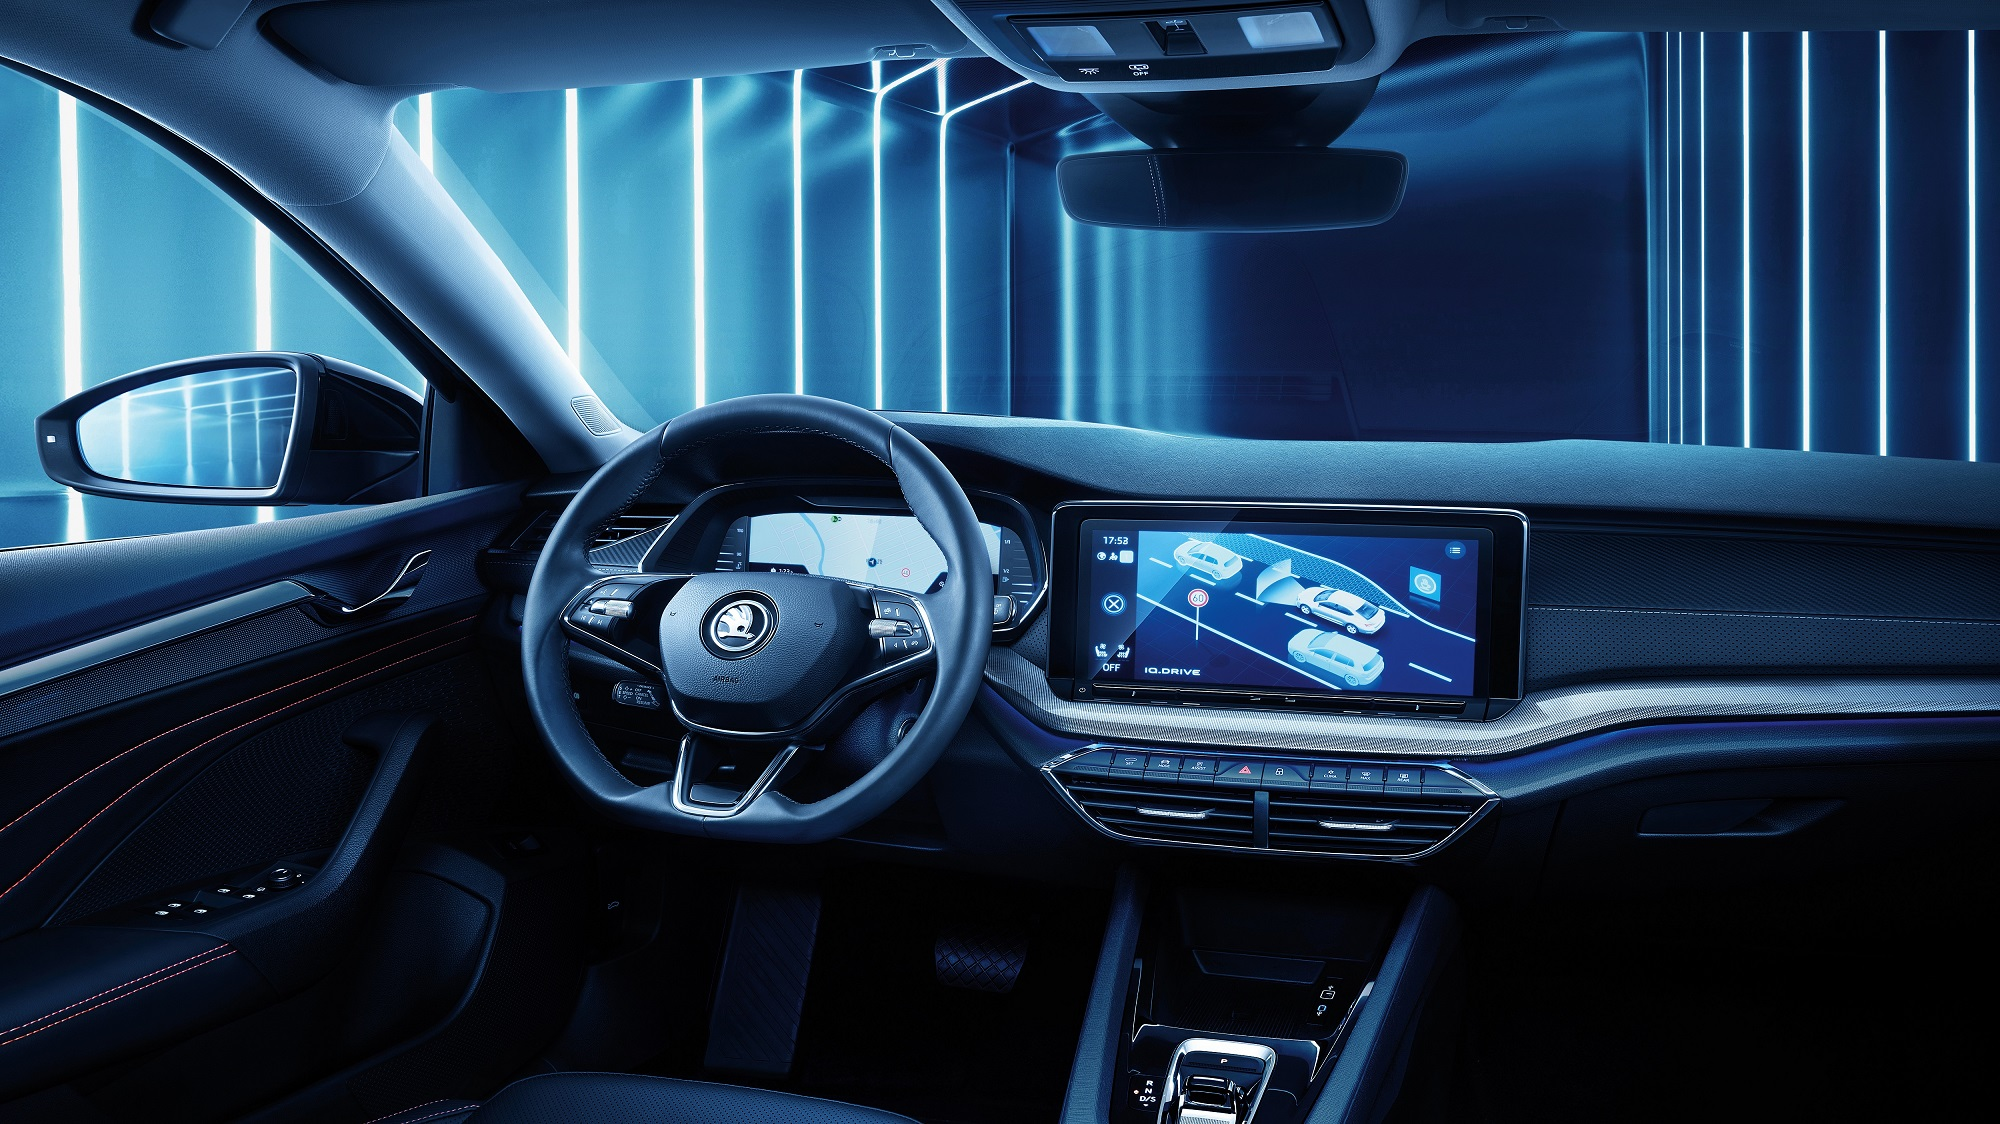 The all-new SKODA OCTAVIA PRO for China: More digital and emotive, and with a lot of extra space - Image 1